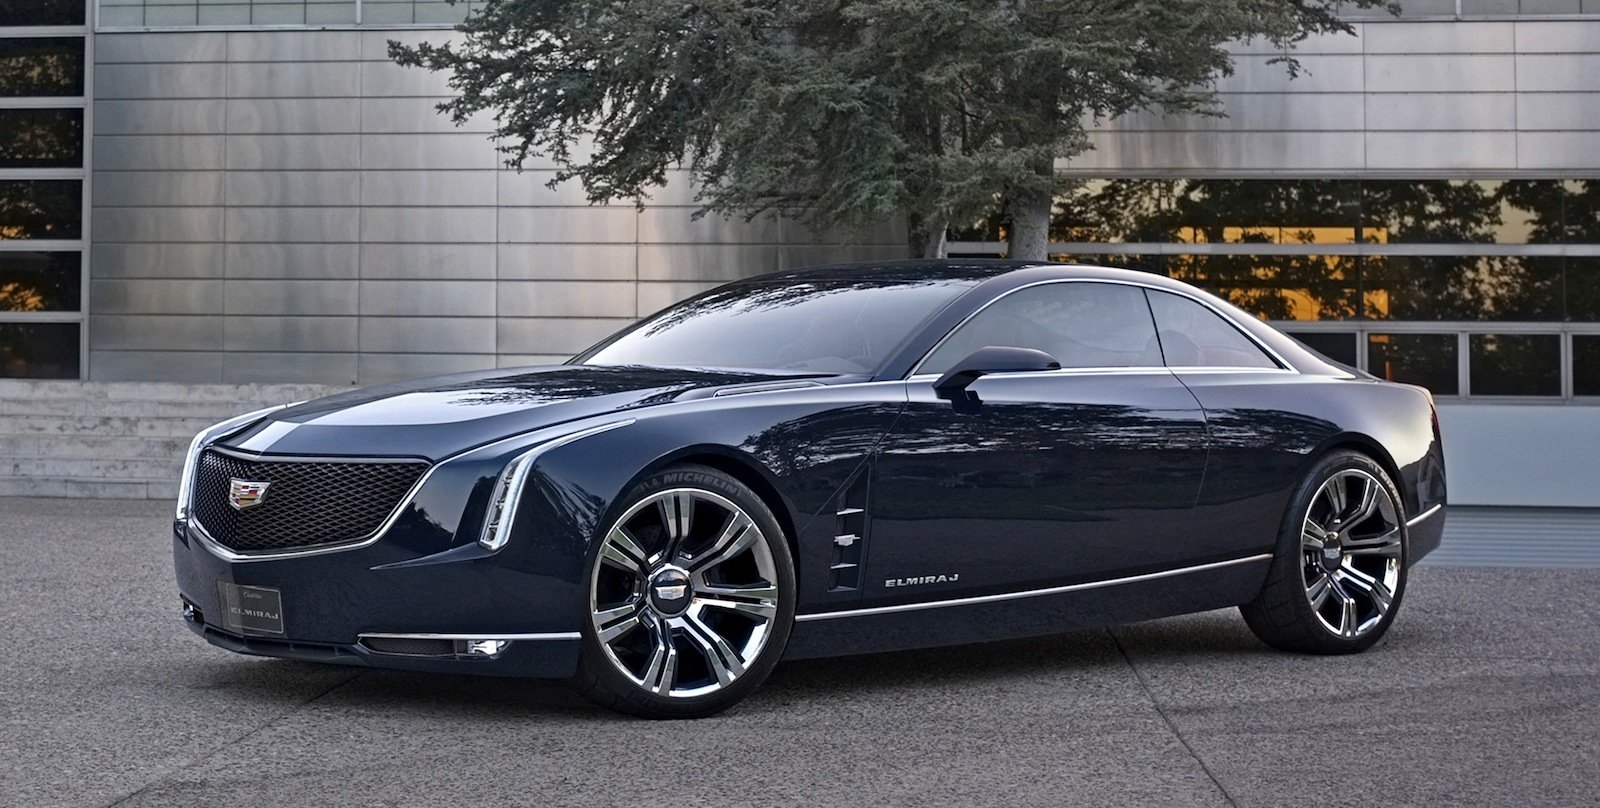 Cadillac Elmiraj Price >> Cadillac Elmiraj: sports coupe concept shows future luxury design - photos | CarAdvice